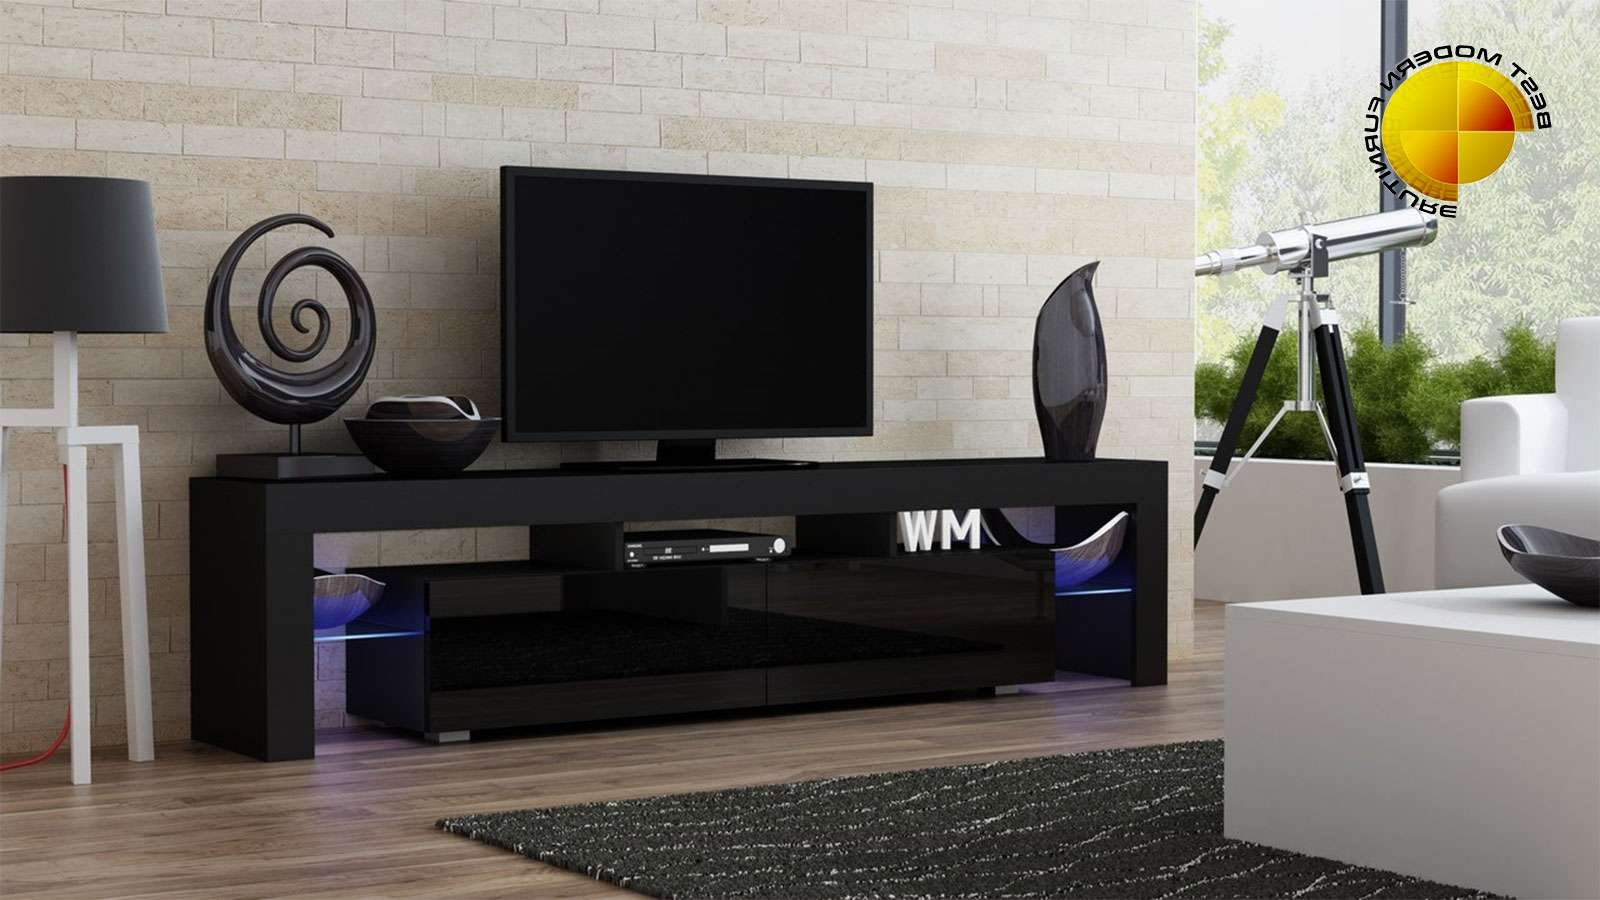 High Gloss Black Tv Cabinets – Imanisr With Regard To Shiny Black Tv Stands (View 4 of 15)